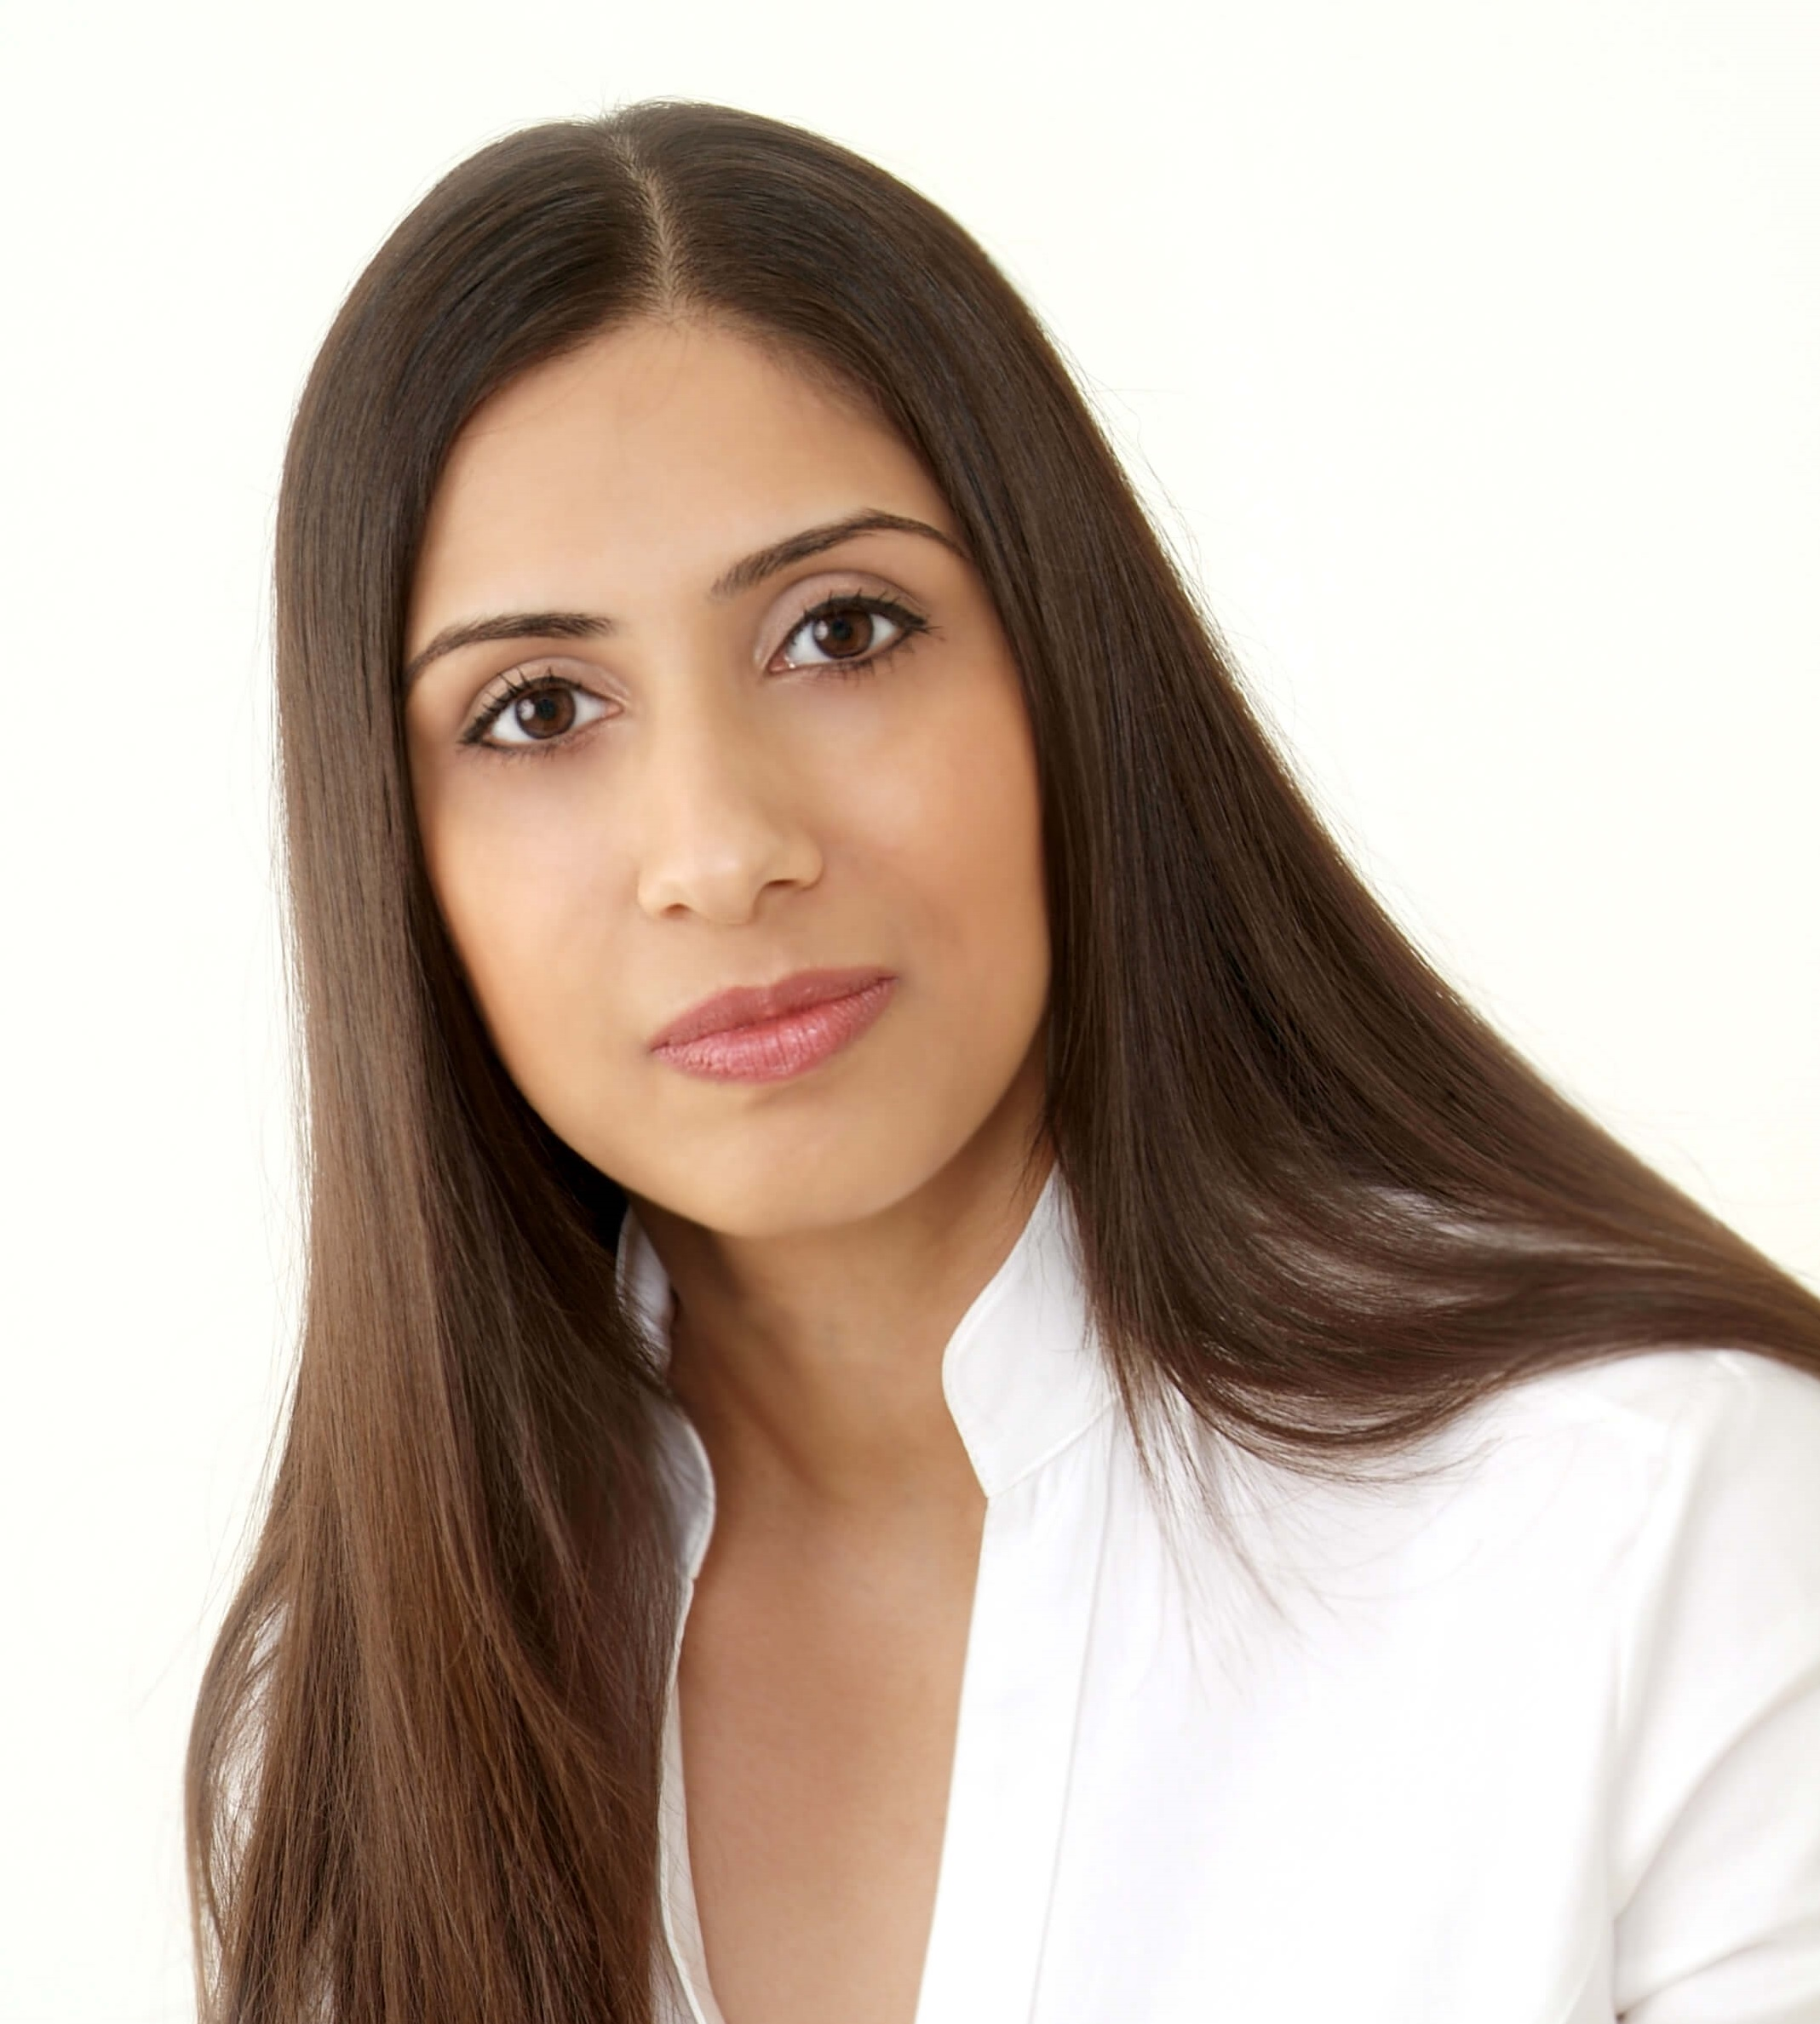 Tajinder Banwait, Founder of Urban Apothecary: Starting a business from your kitchen table